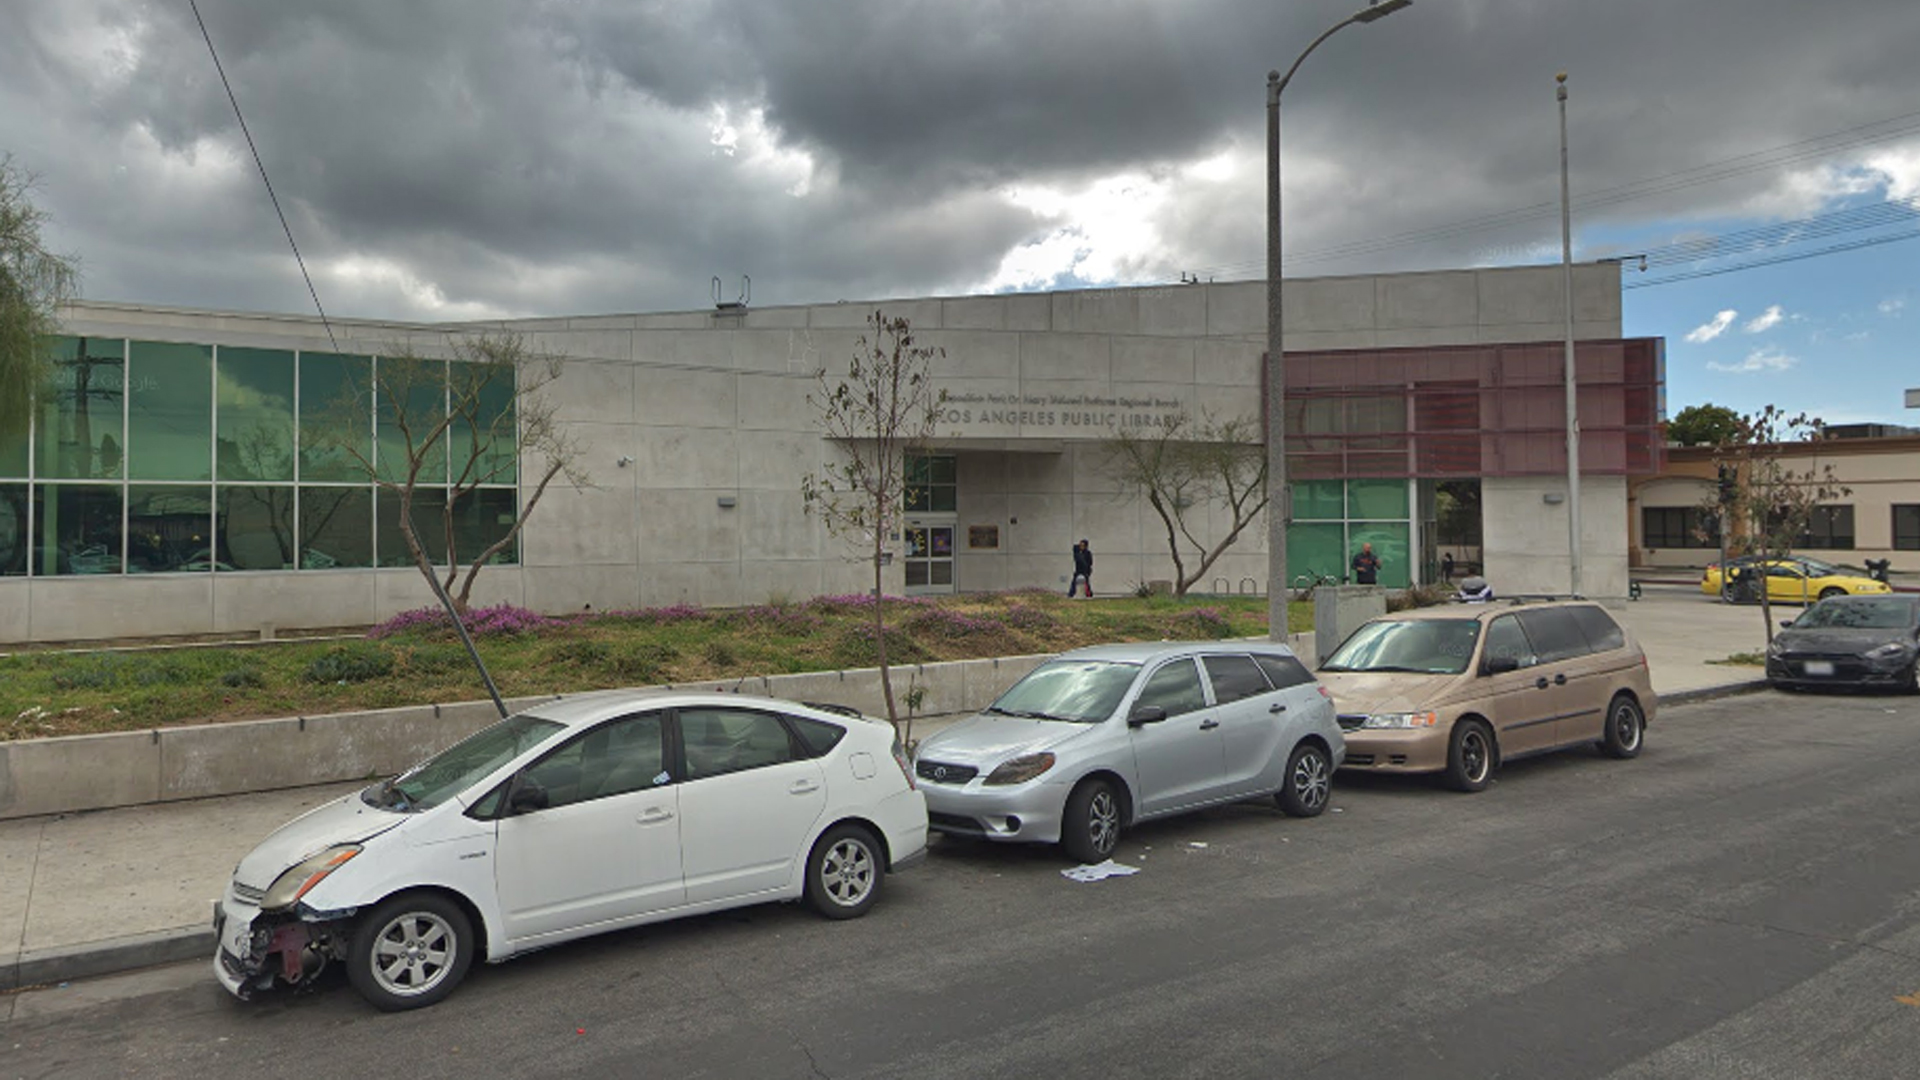 A Los Angeles Public Library branch in Exposition Park is seen in a Google Maps Street View image.